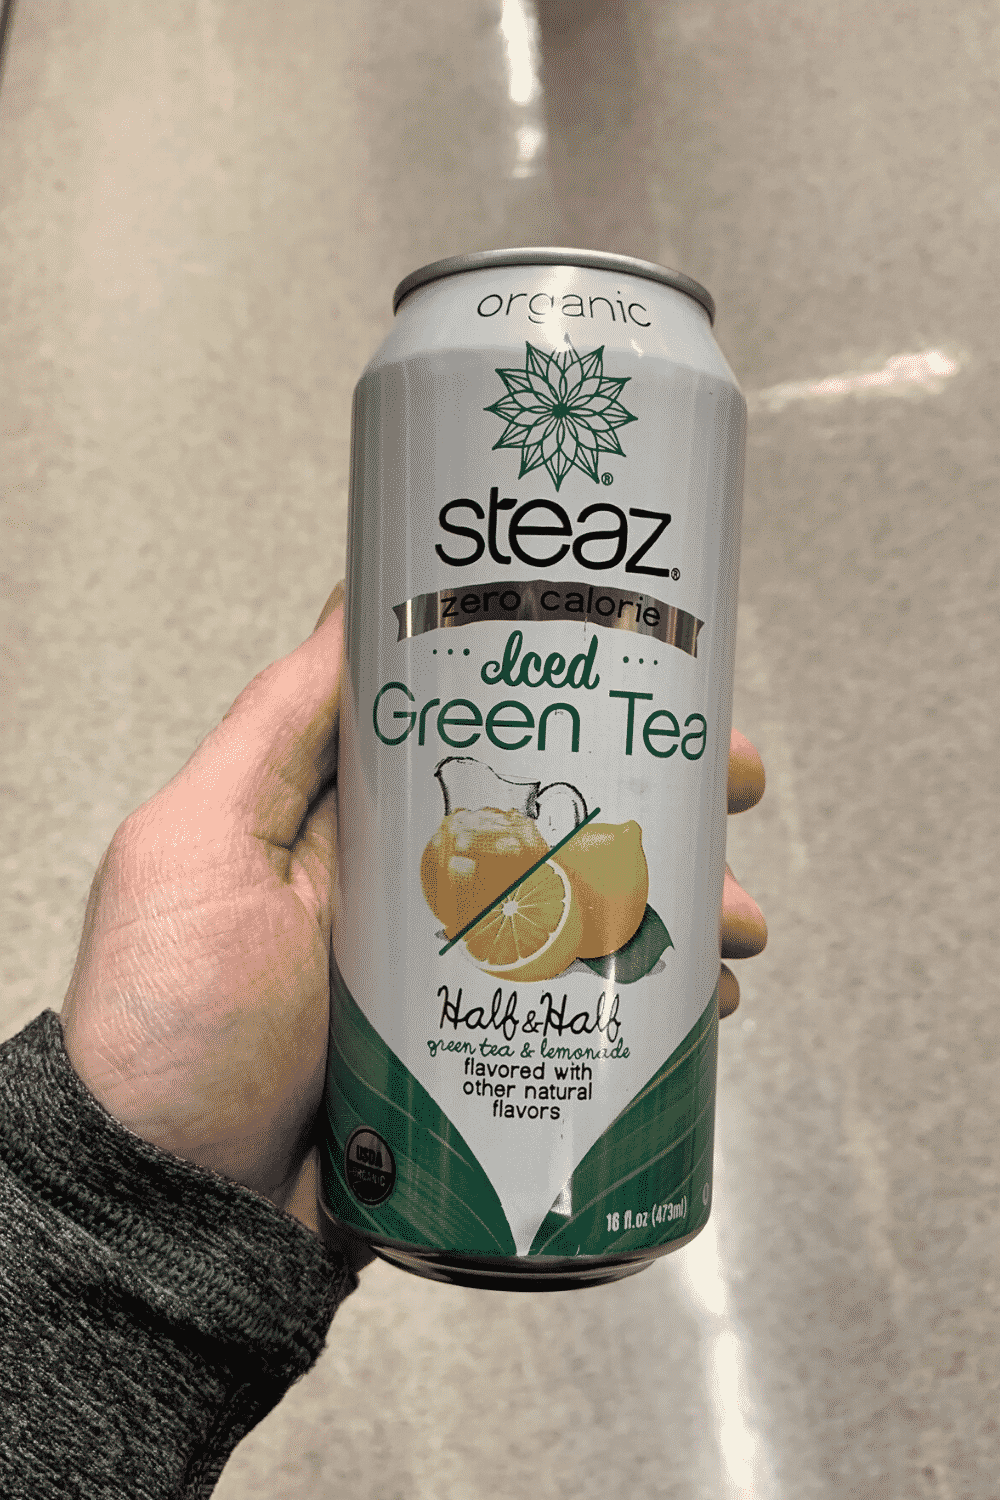 A hand holding a can of zero calories Steaz iced green tea